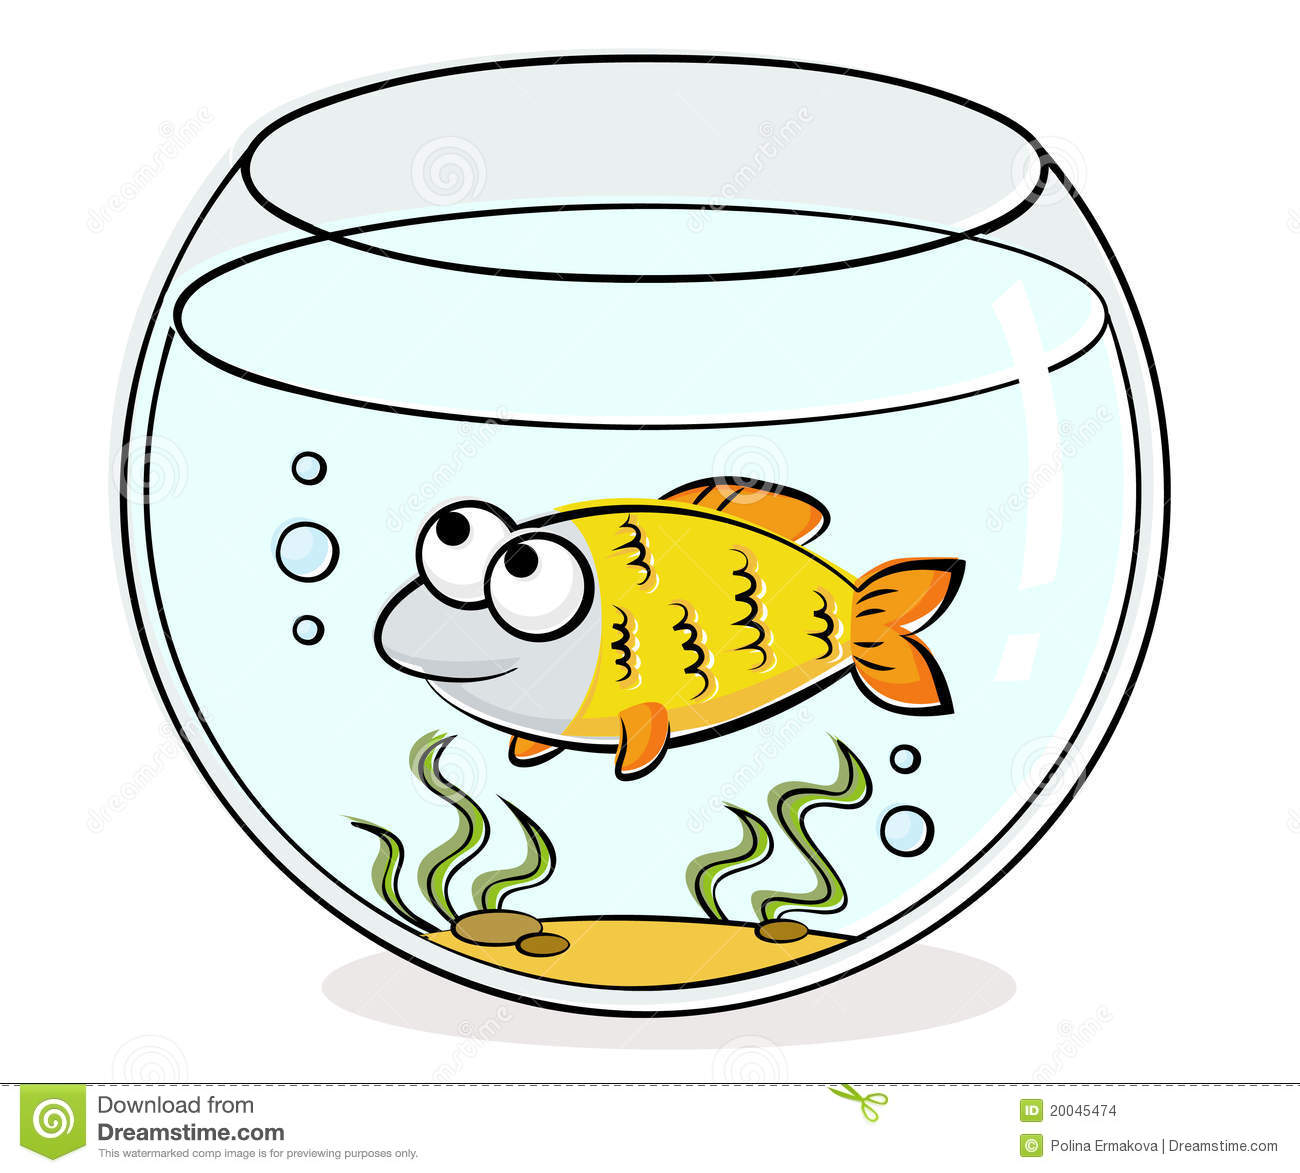 back-gallery-for-fish-aquarium-clip-art-chIKVF-clipart.jpg